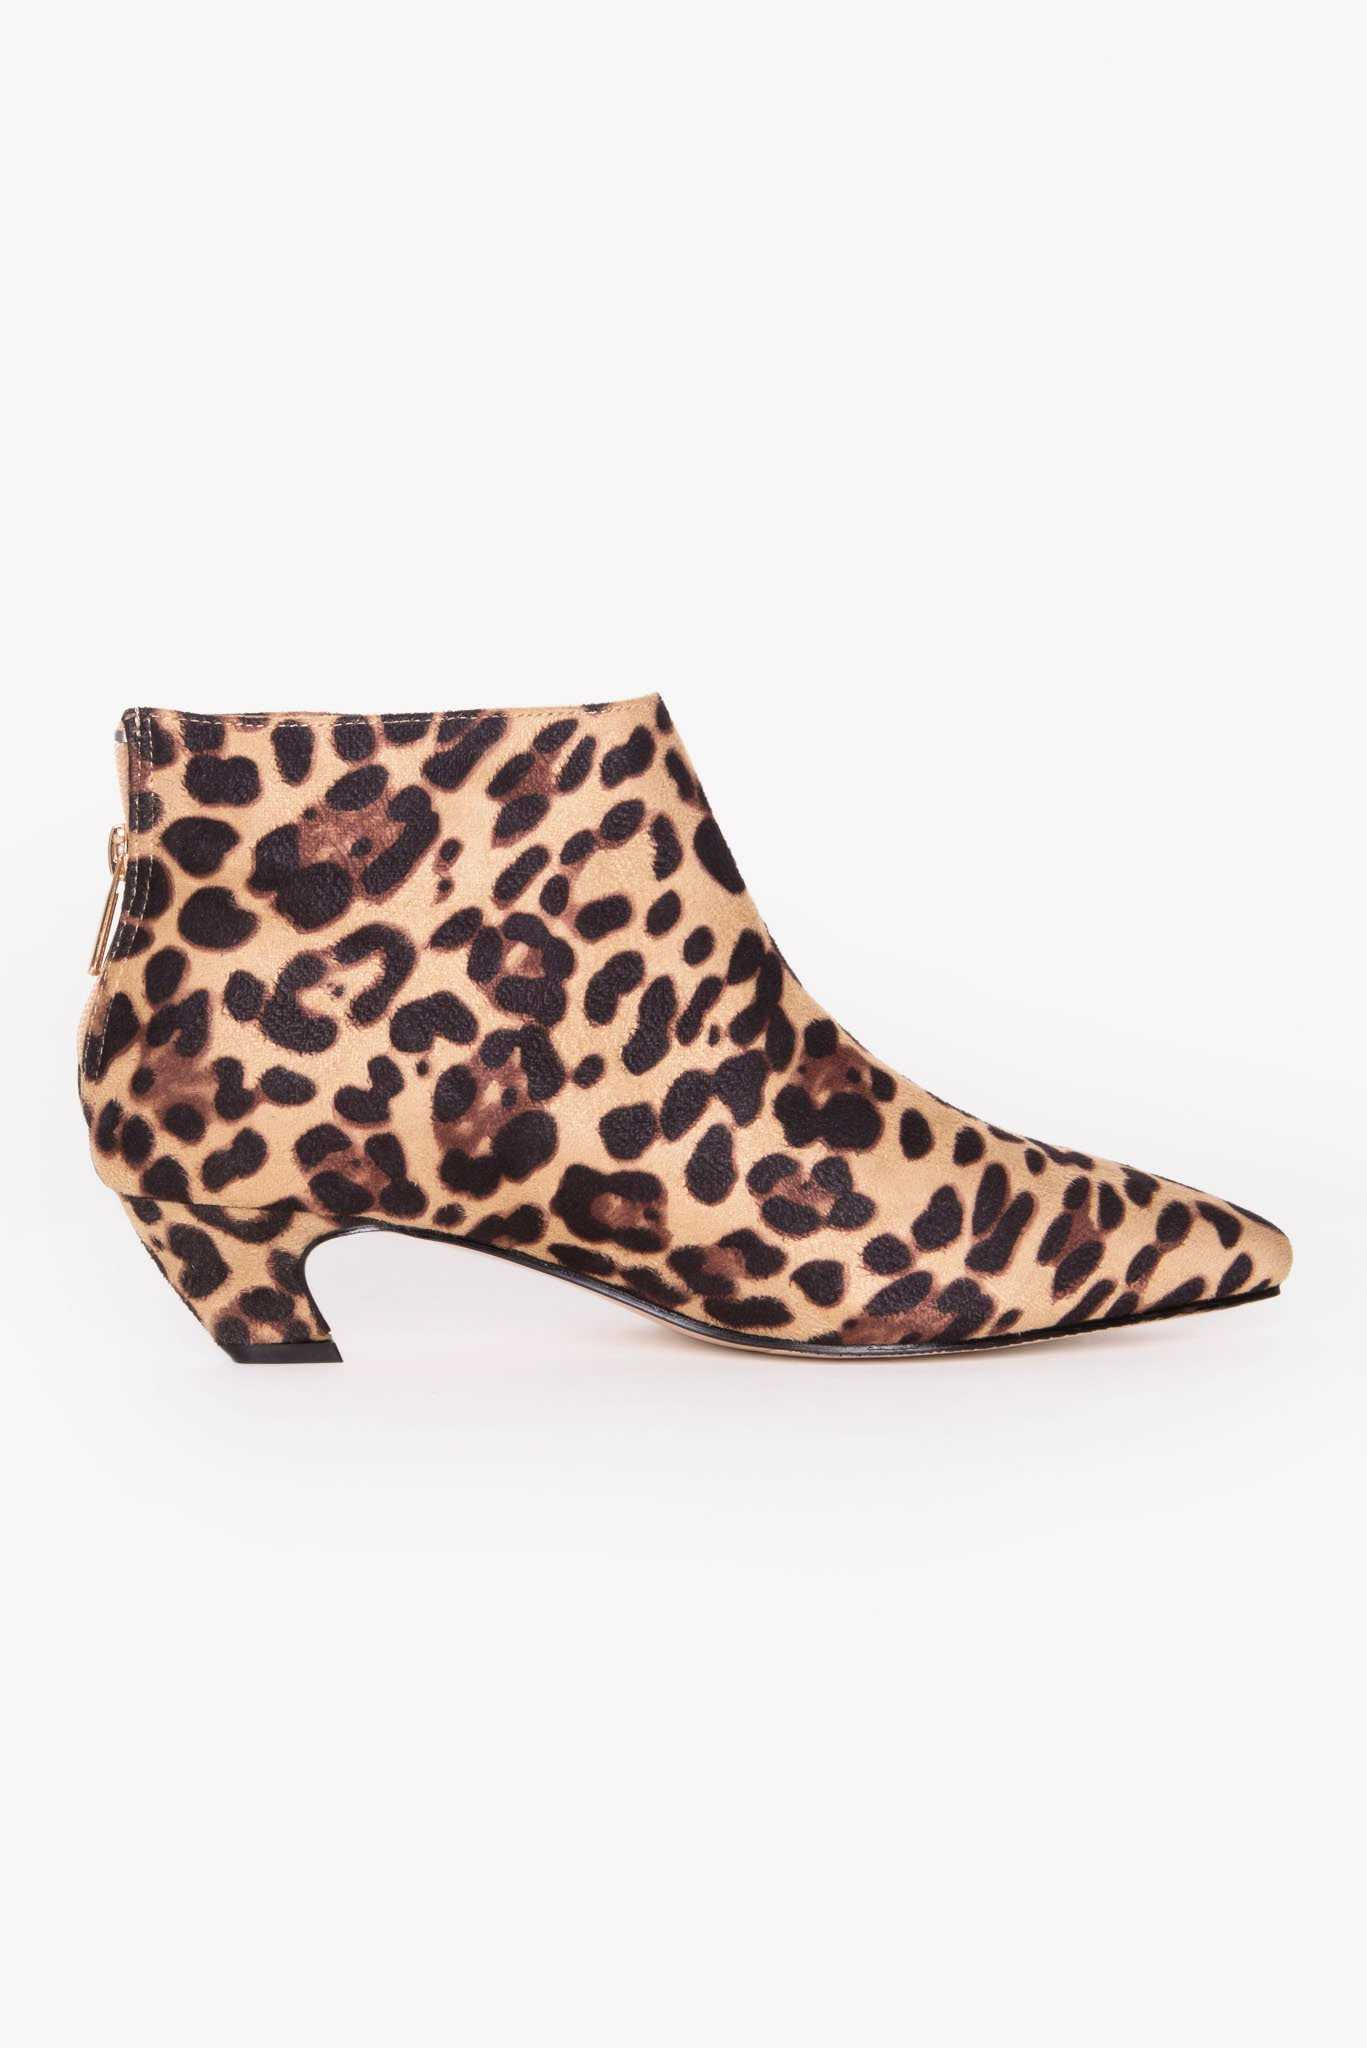 Leopard Print Boots | Raw Orange